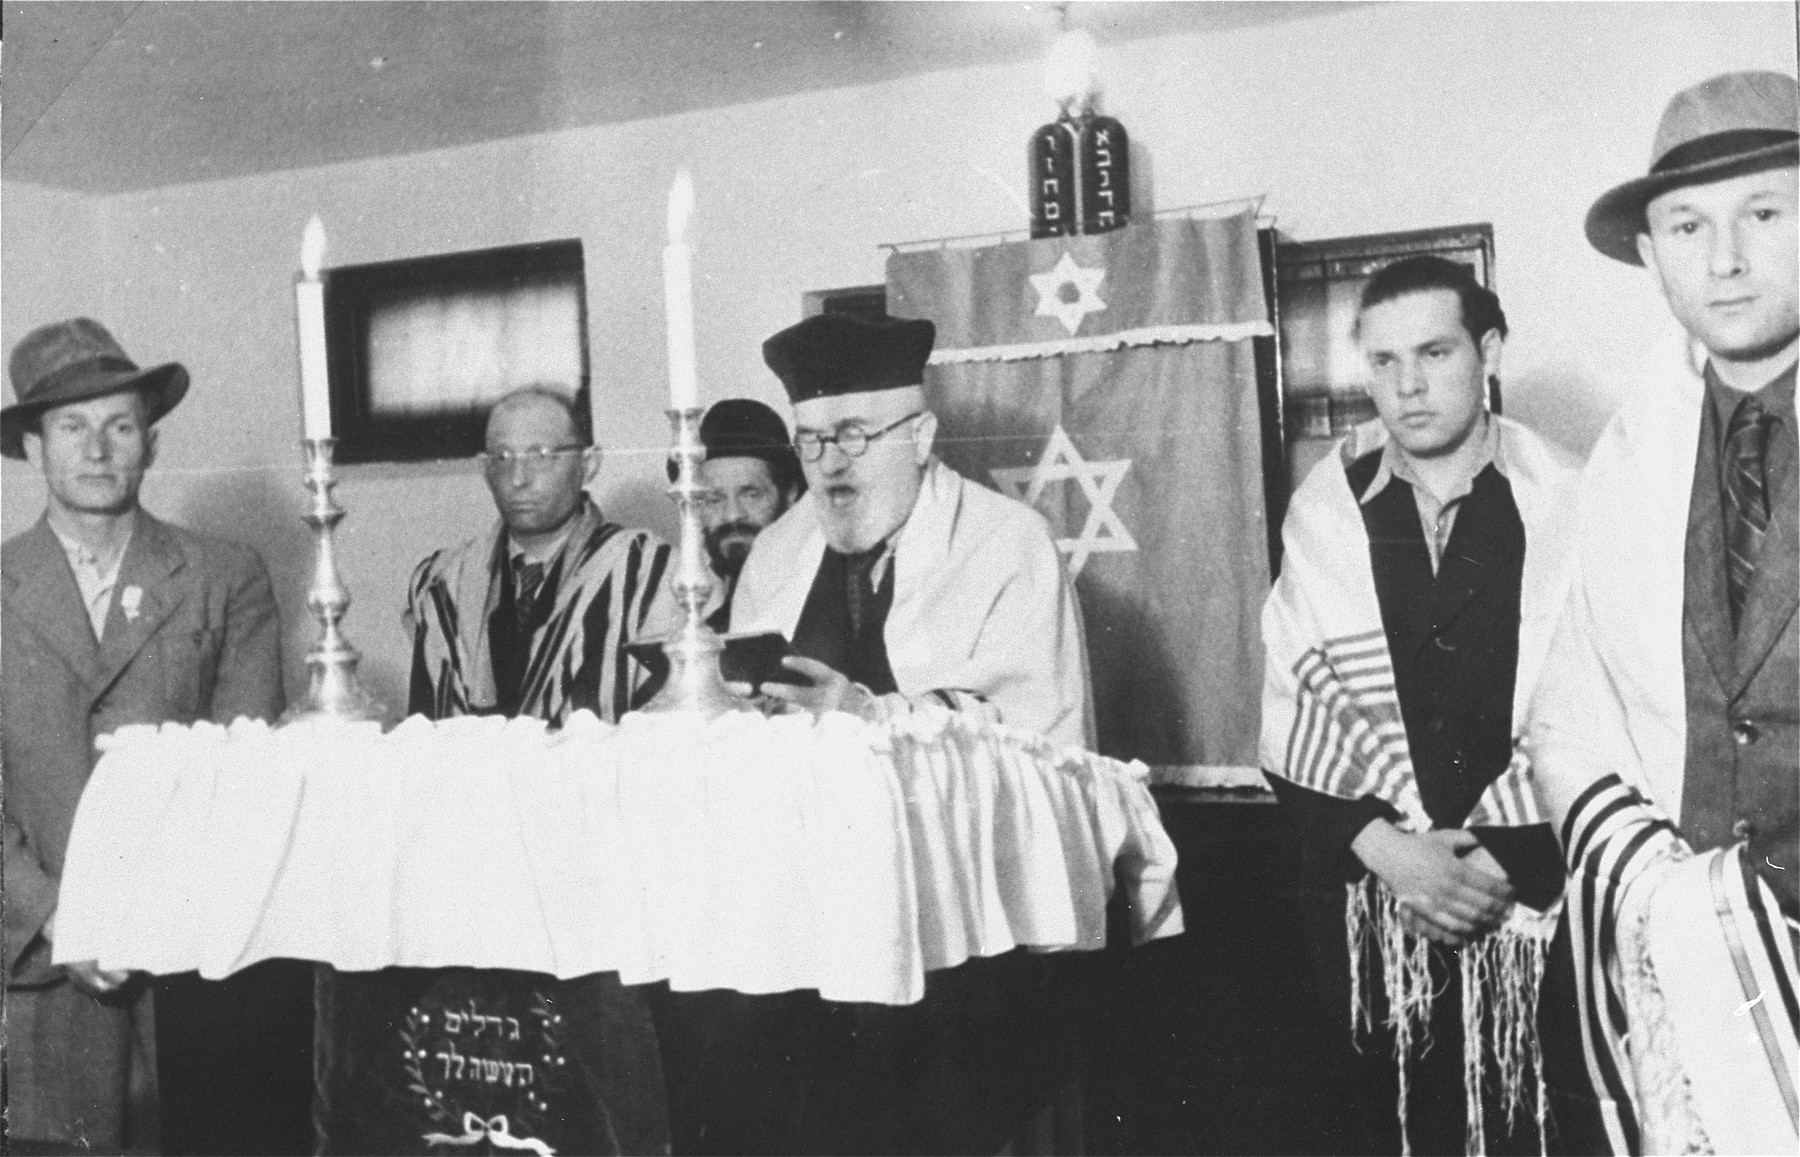 In a synagogue in the Zeilsheim displaced persons' camp, the cantor chants the memorial prayer for victims of the holocaust.  Among those pictured is Roman Bol (Raymond Boll), standing on the far left.